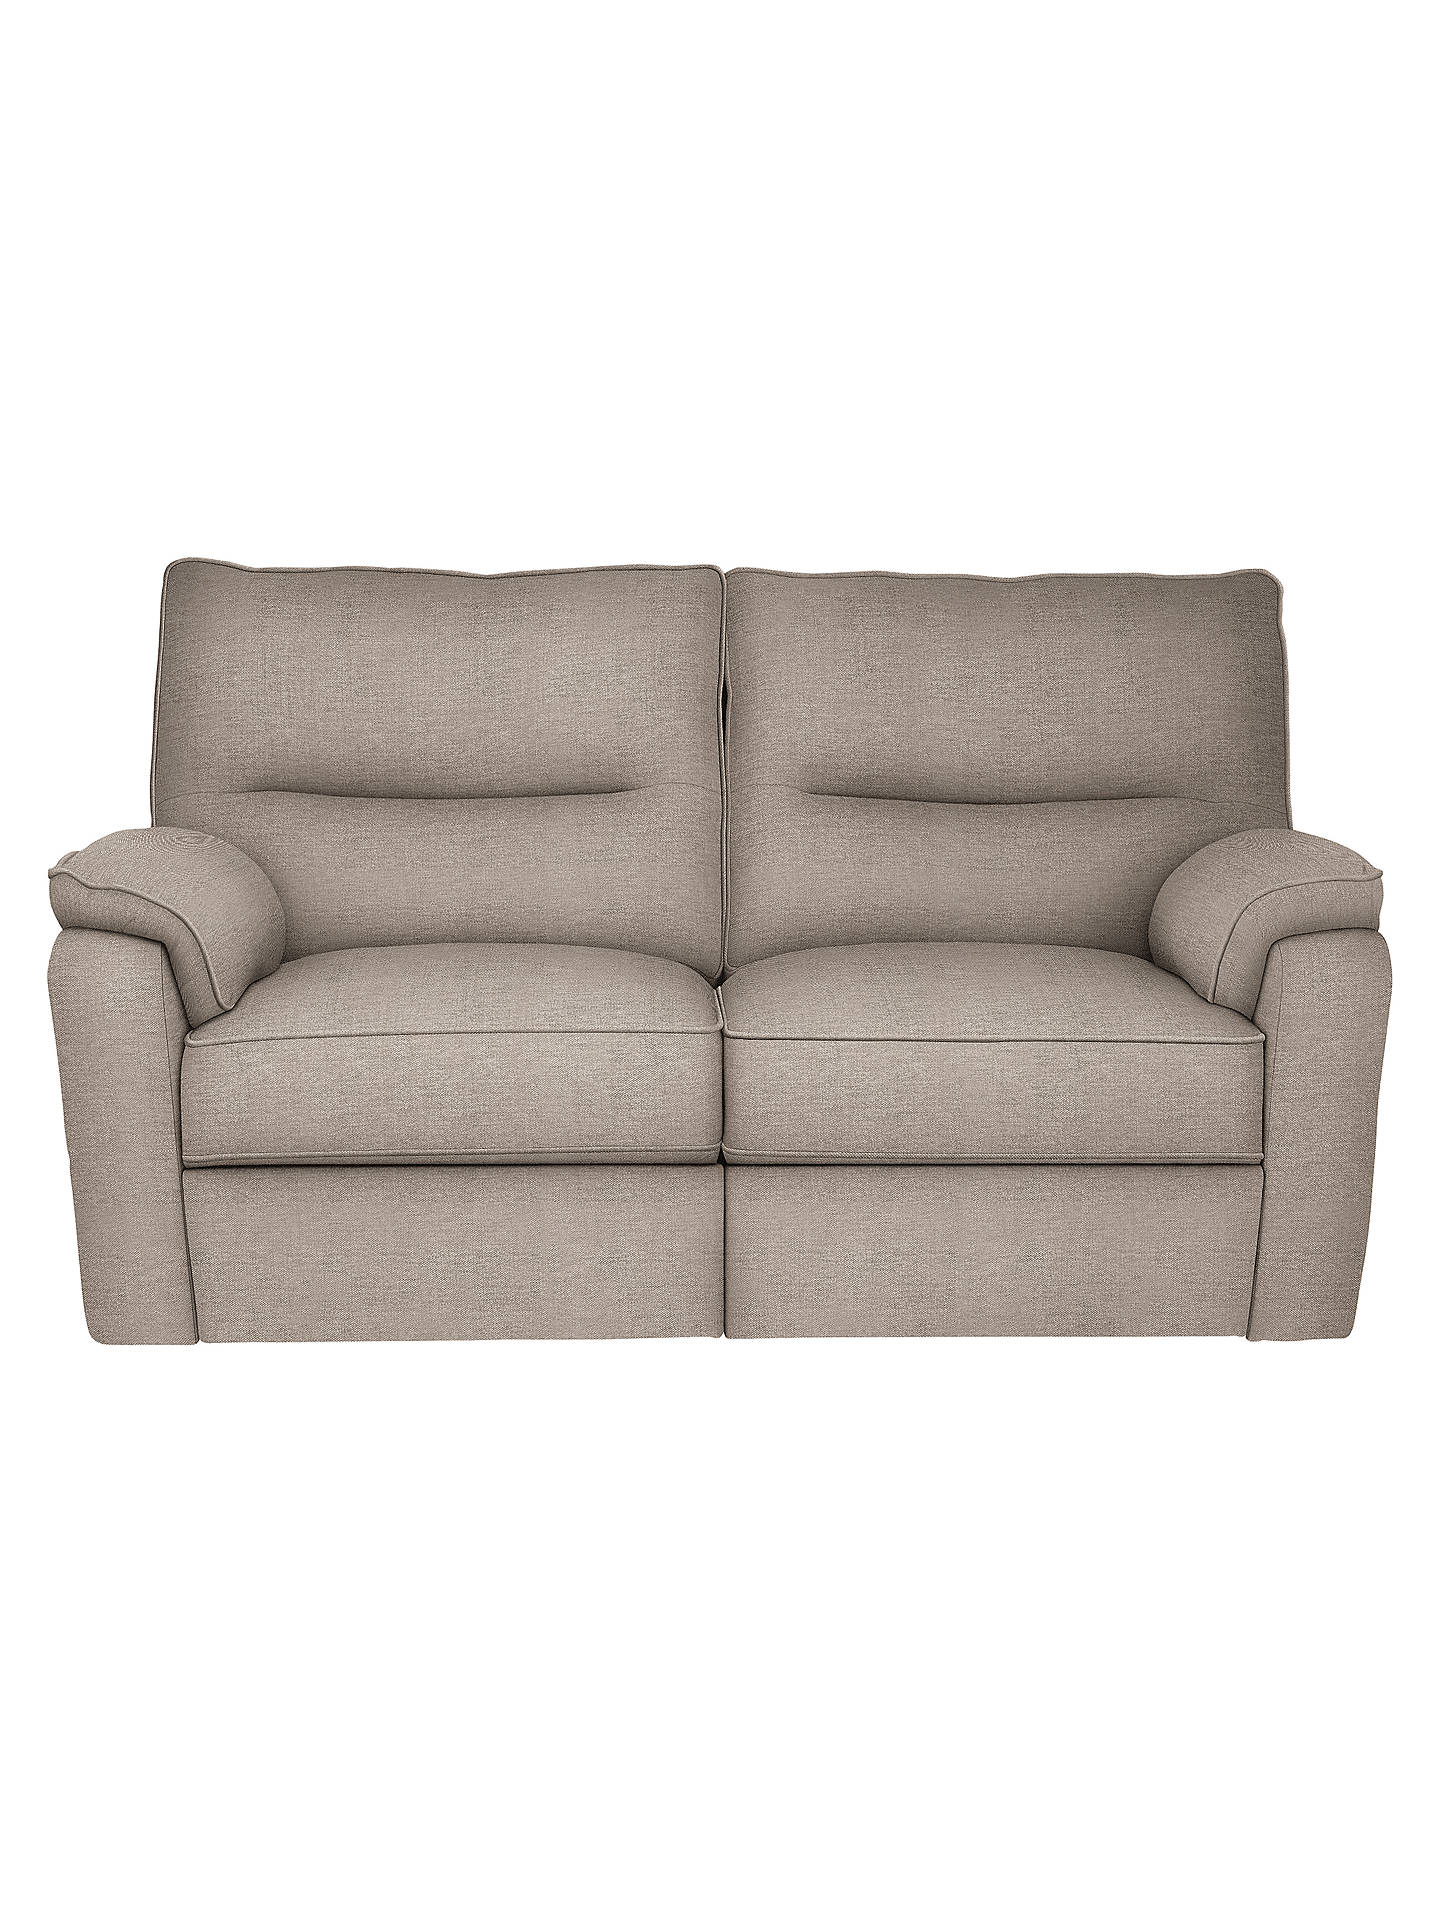 John Lewis Carlisle Small 2 Seater Manual Recliner Sofa Opal Putty Online At Johnlewis